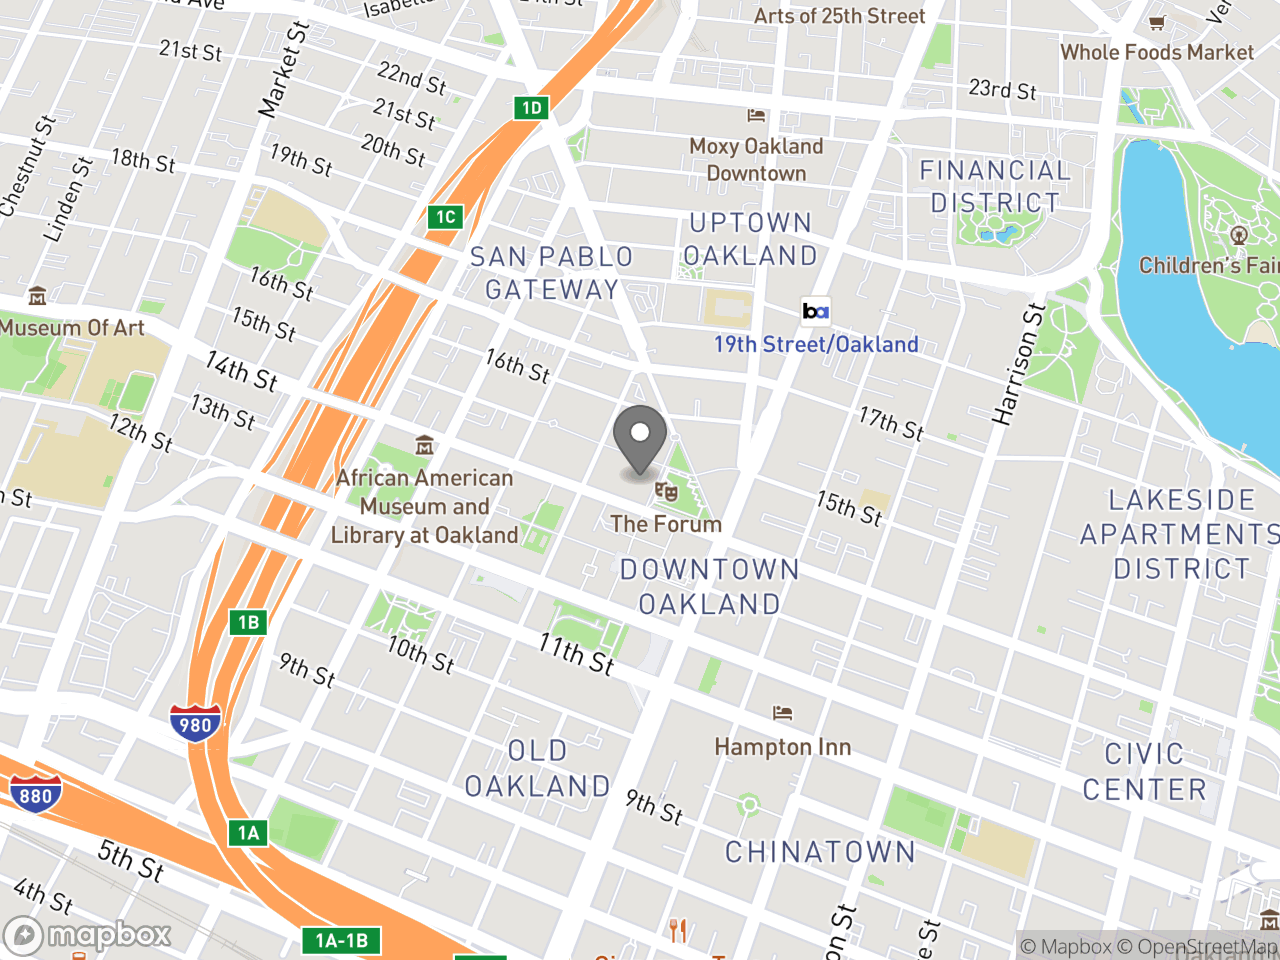 Map location for Oakland's 2020-21 Redistricting Process, located at 1 Frank H. Ogawa Plaza in Oakland, CA 94612